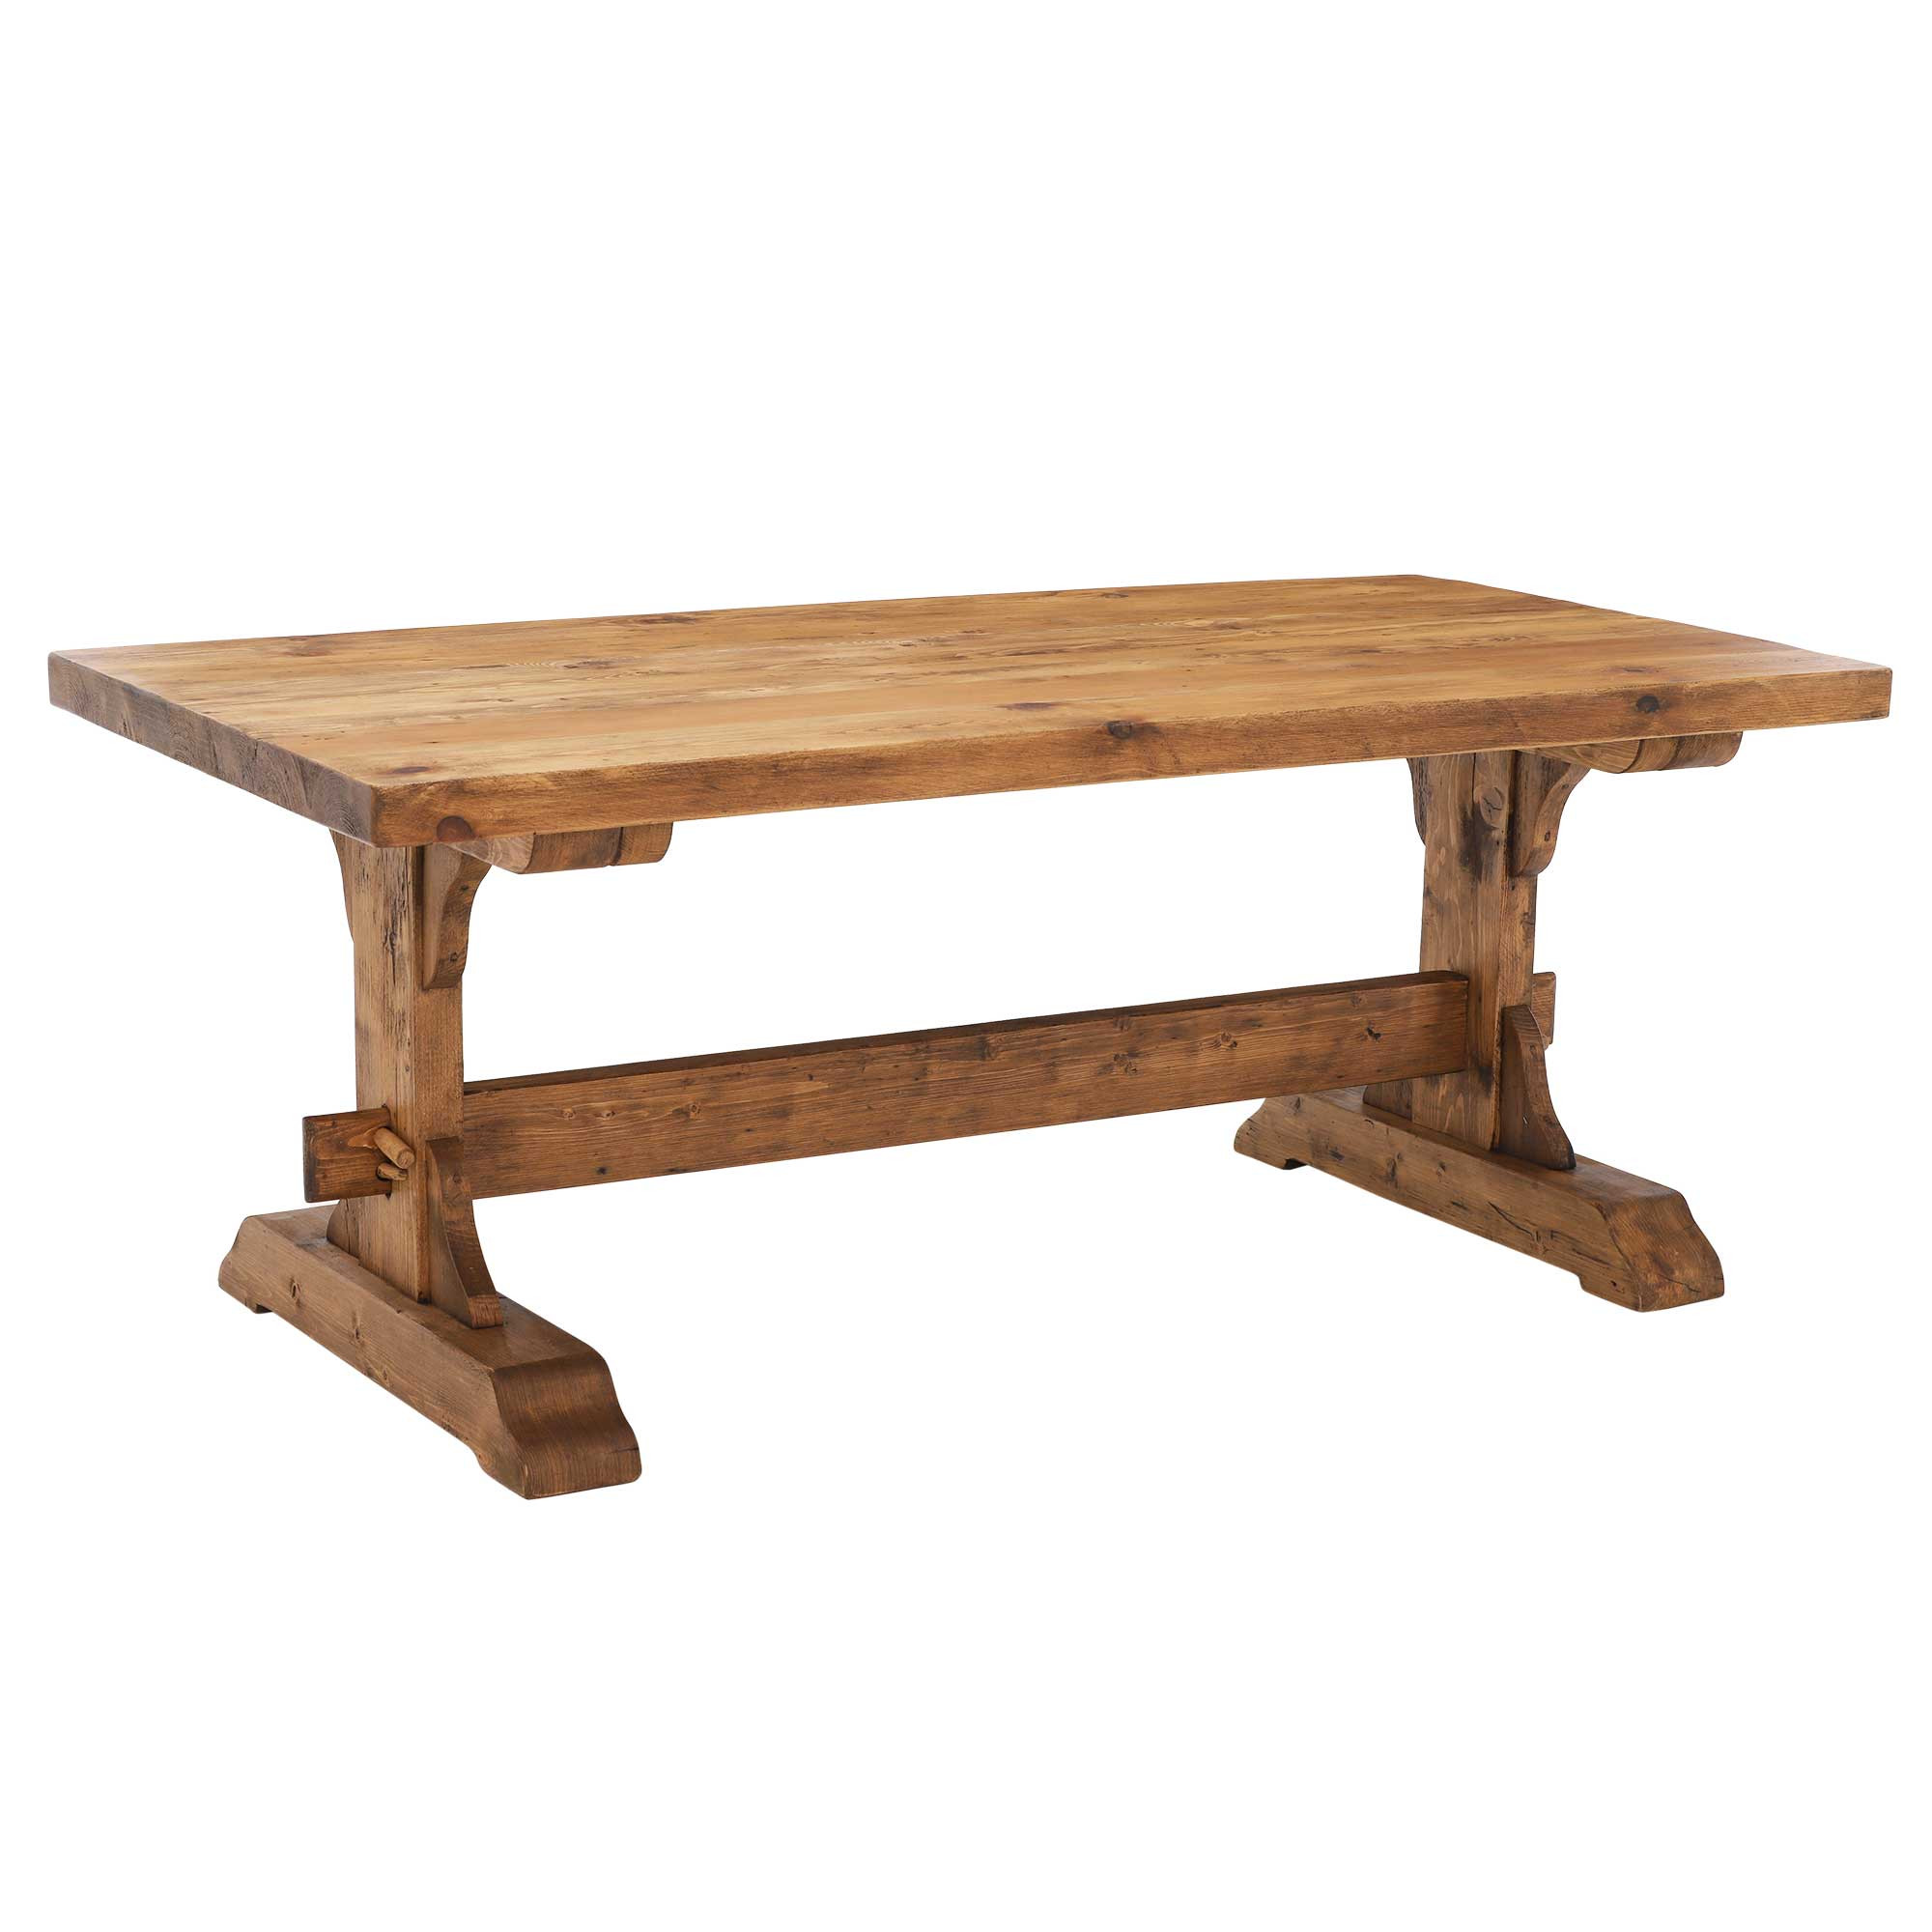 Best ideas about Wood Dining Room Table . Save or Pin Covington Reclaimed Wood Dining Table Tables Now.